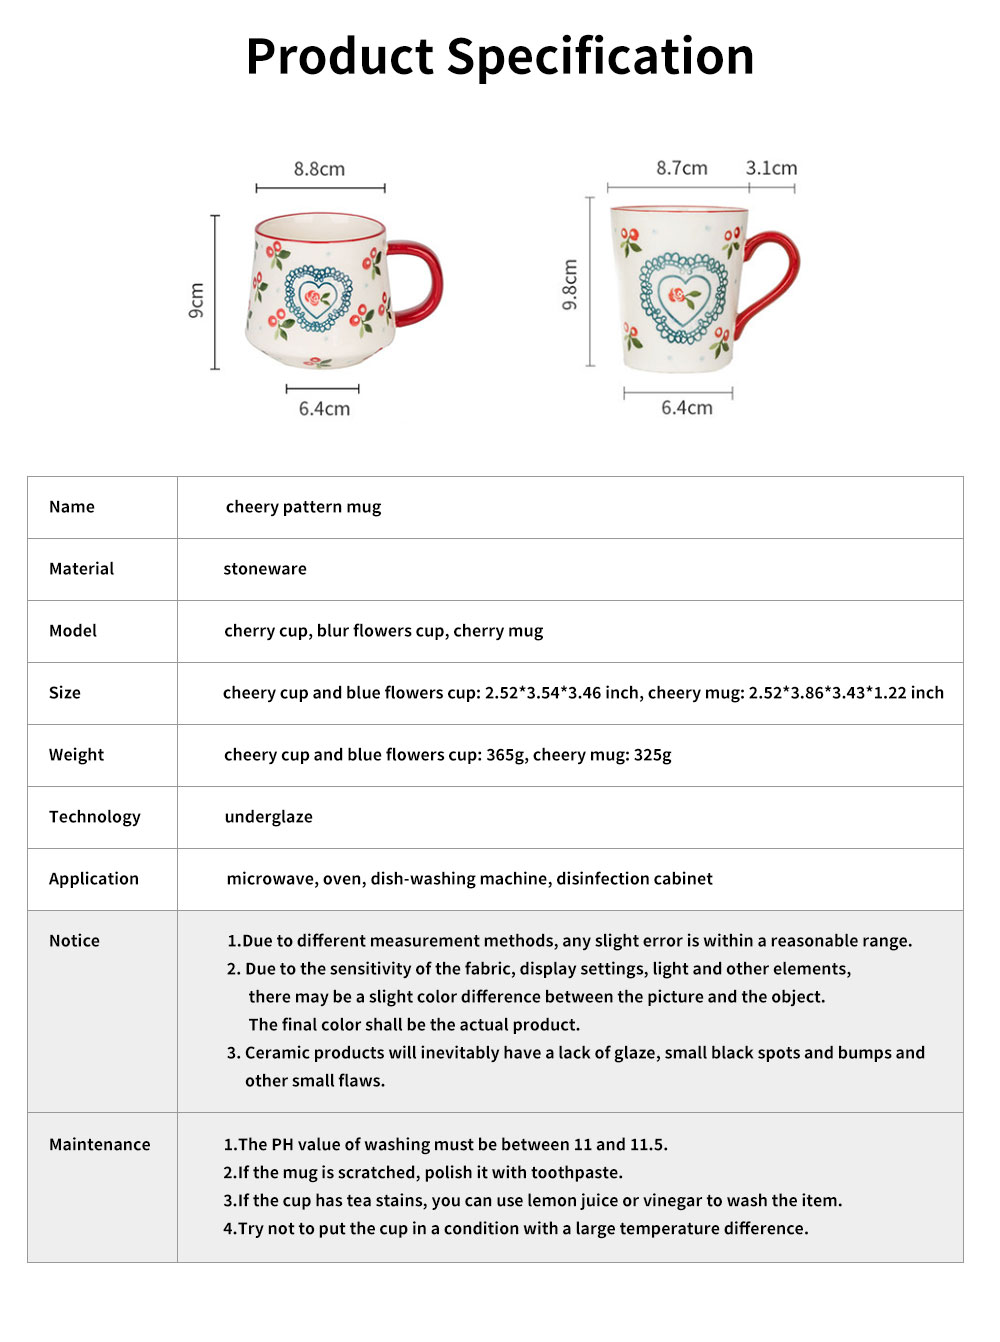 Cute Delicate Elegant Ceramics Mug with Cherry Pattern, Large Capacity Underglaze Household Water Cup 6